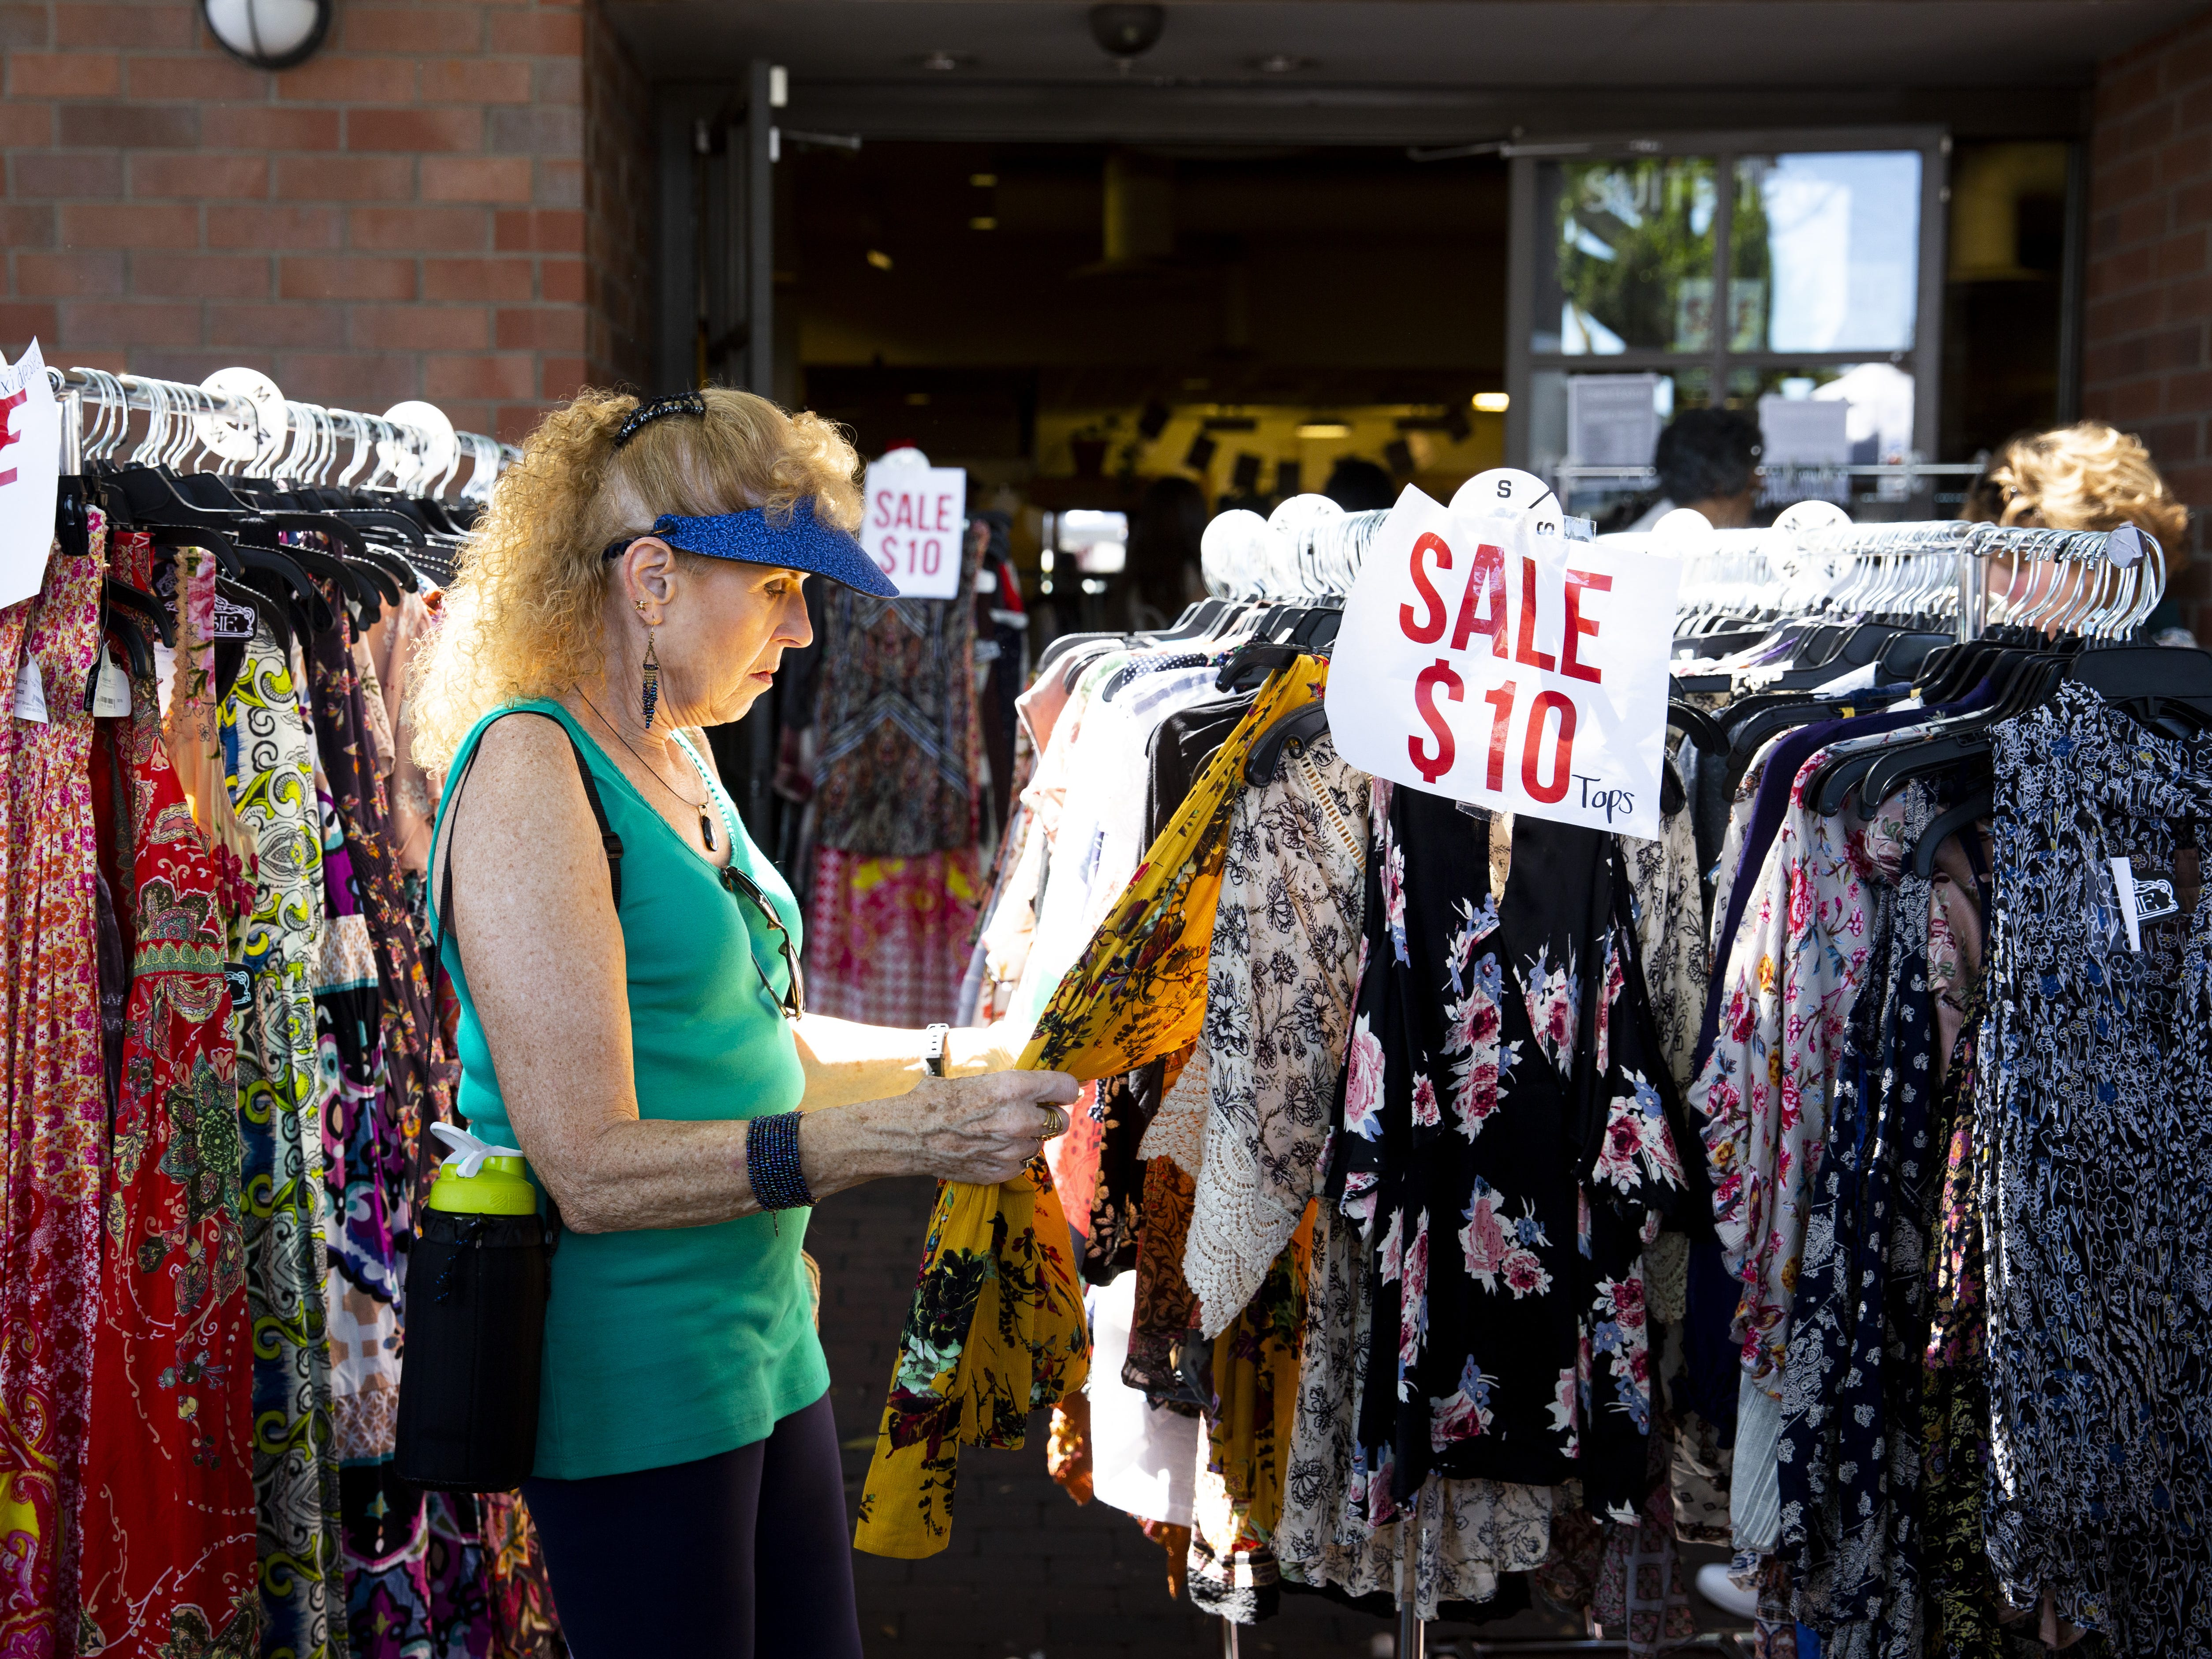 Rosie Mook, of Mesa, browses the shirts for sale at Creations Boutique on Mill Avenue during the Spring Tempe Festival of the Arts in downtown Tempe on March 30, 2019.